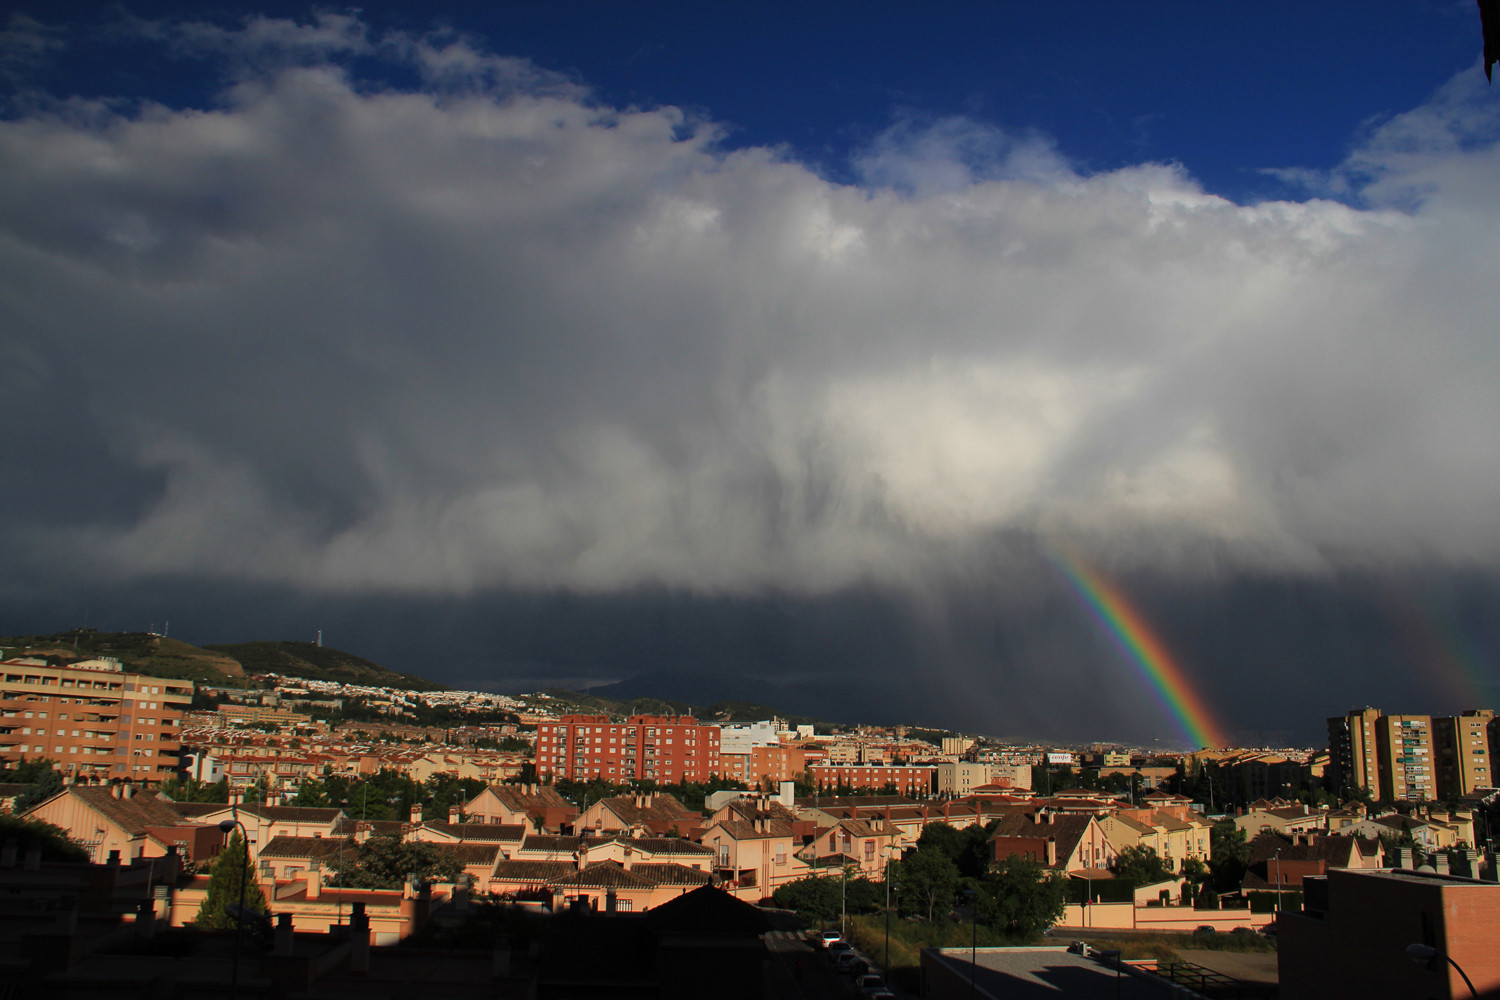 """The Rainbow"" - PN Sierra Nevada, Granada - MC07430"